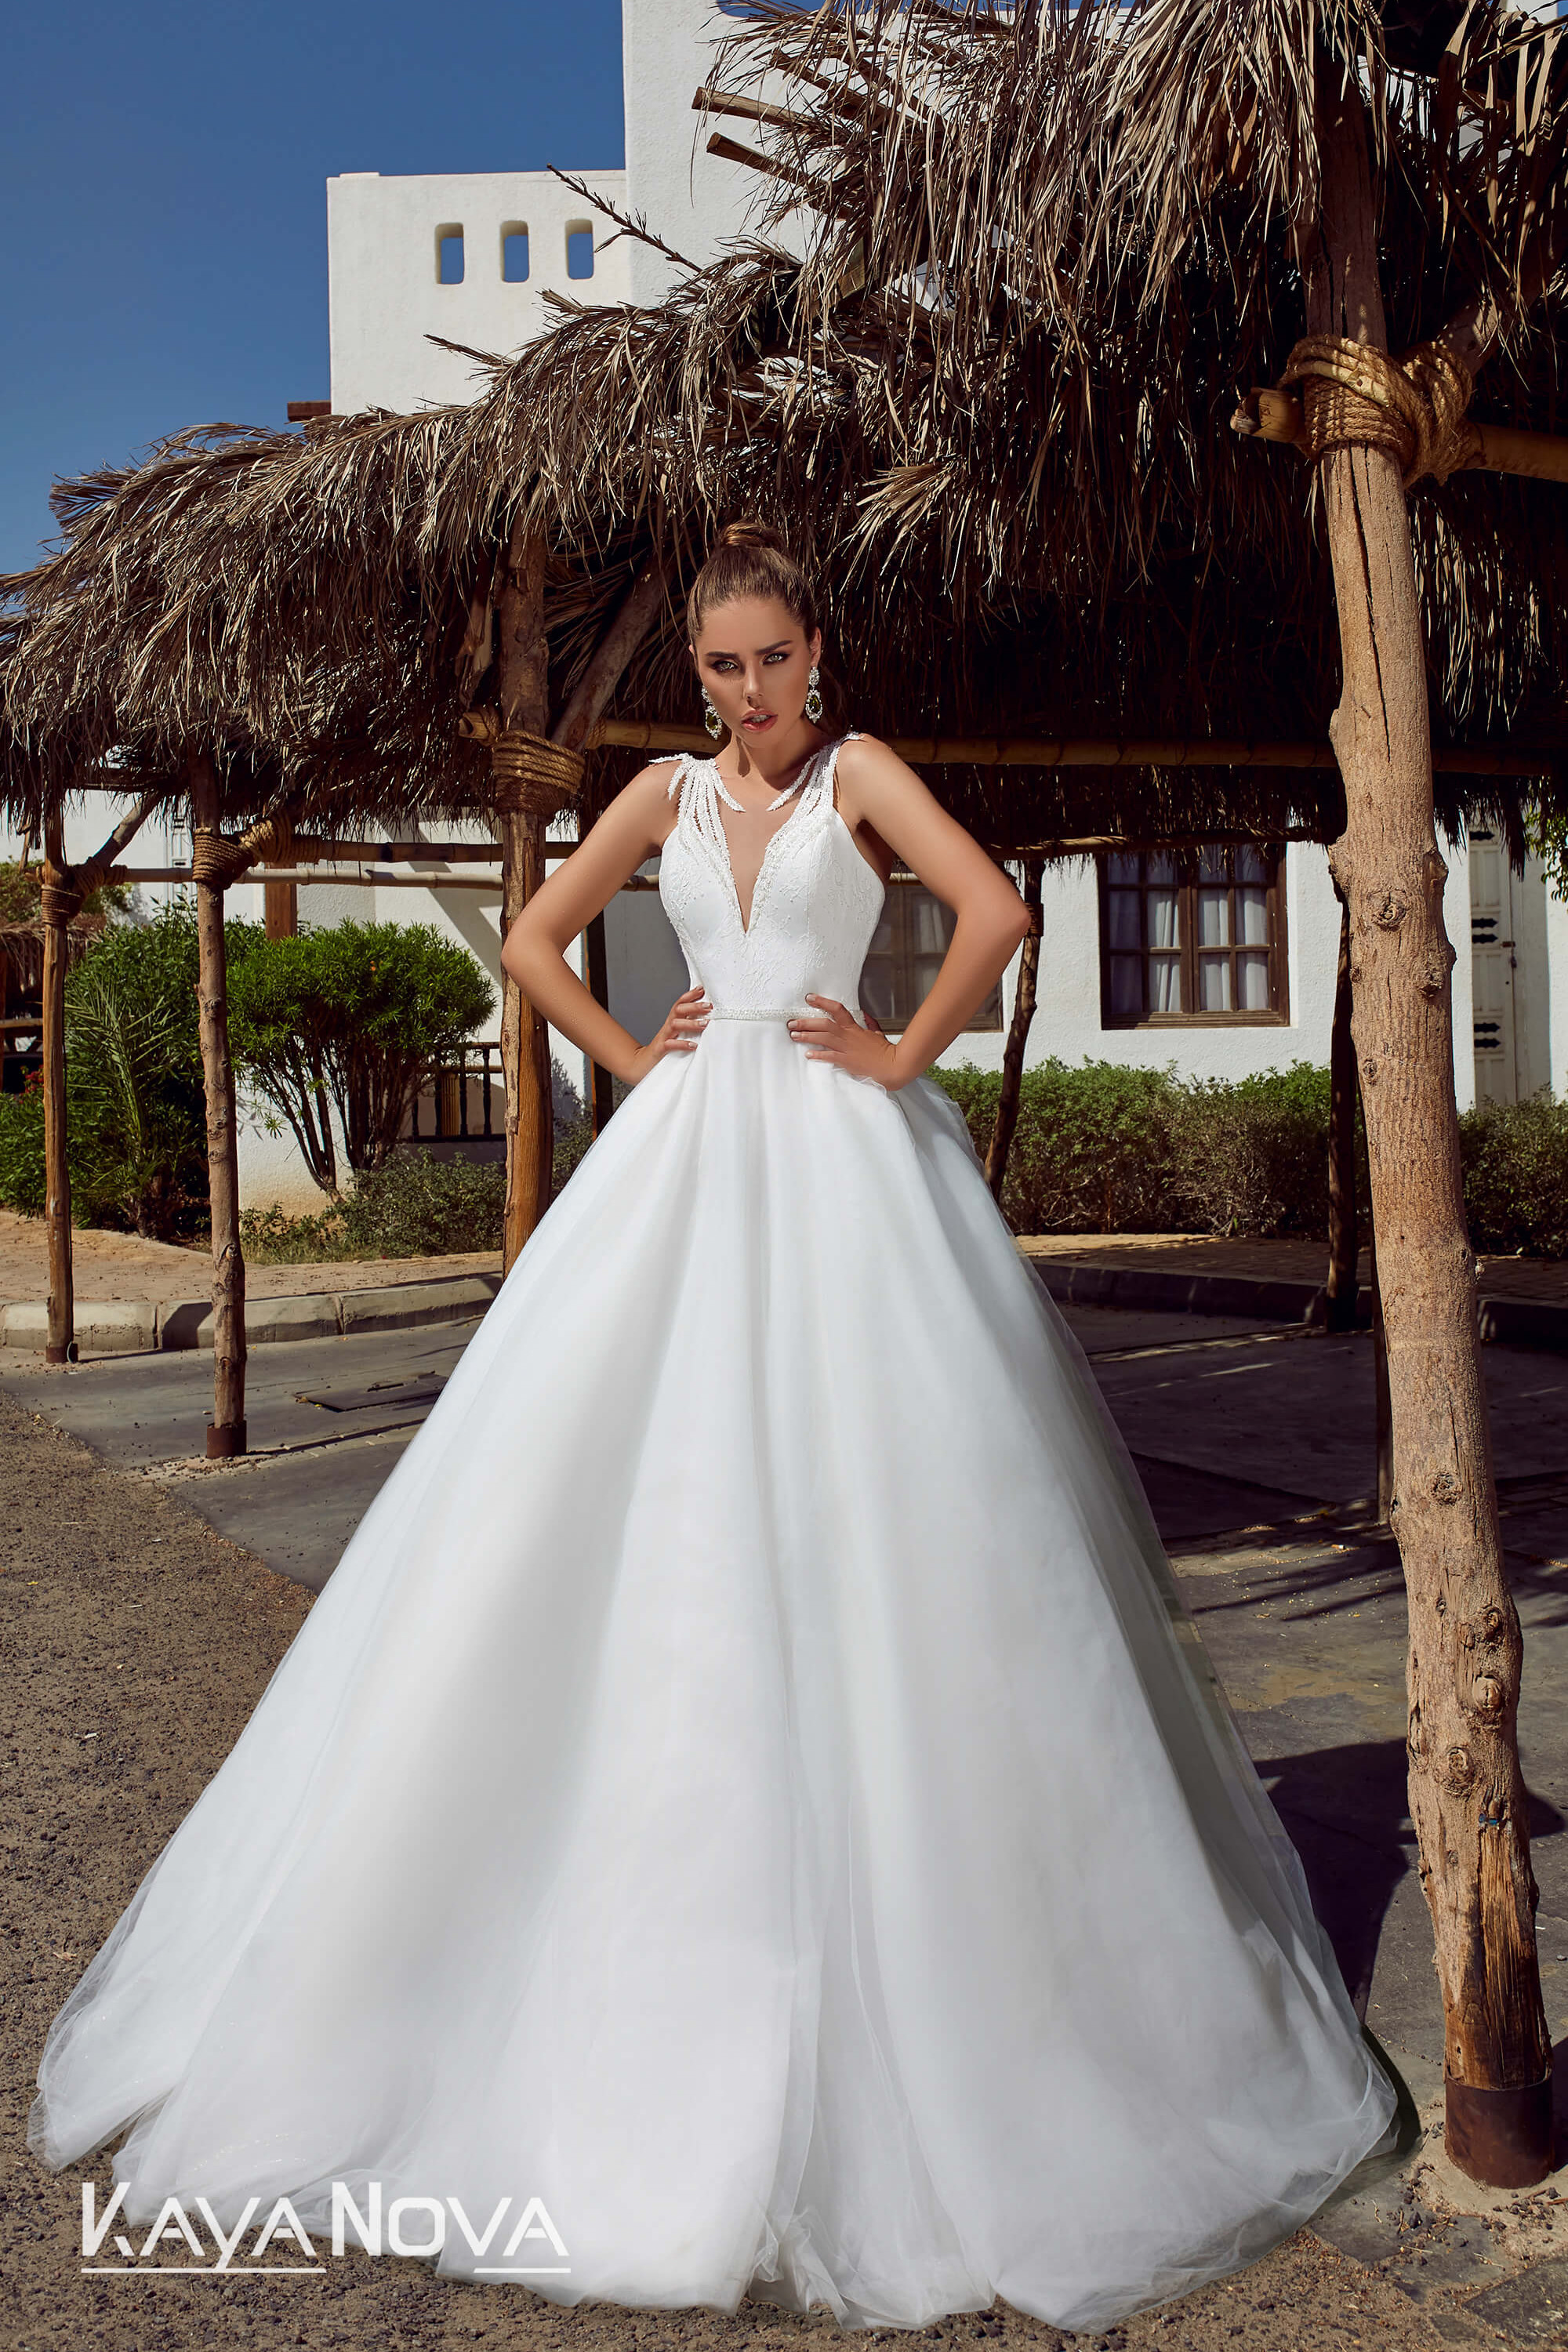 https://kayawedding.com/images/stories/virtuemart/product/Jakline 11.jpg